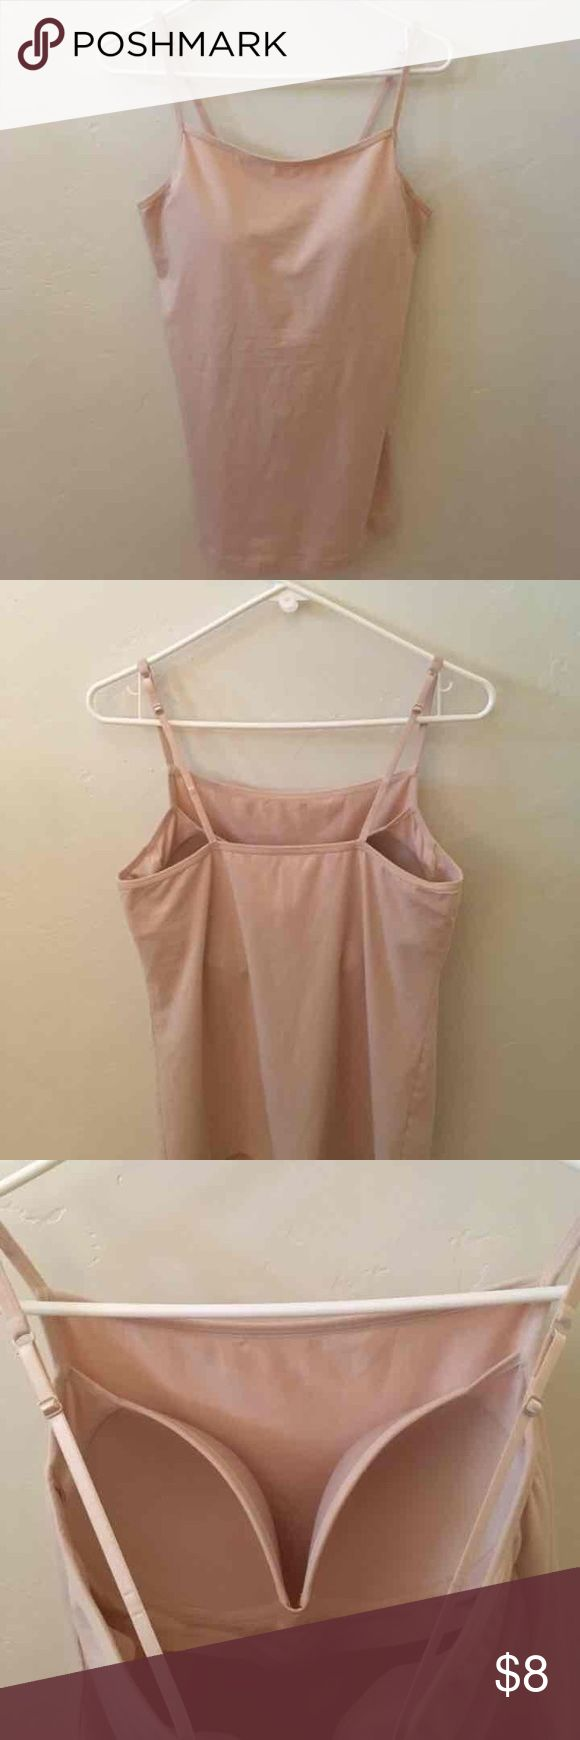 Modern Movement Cami Bra Top (XXL) NWOT Modern Movement Beige Cami with Built-In Shaping Bra Cups (Size XXL). Built-In Bra Hoes All The Way Around with Foam Lined Bra Cups. Provides Shaping, Support, and Coverage. Adjustable Straps. *Brand New w/o Tags!! Modern Movement Tops Camisoles